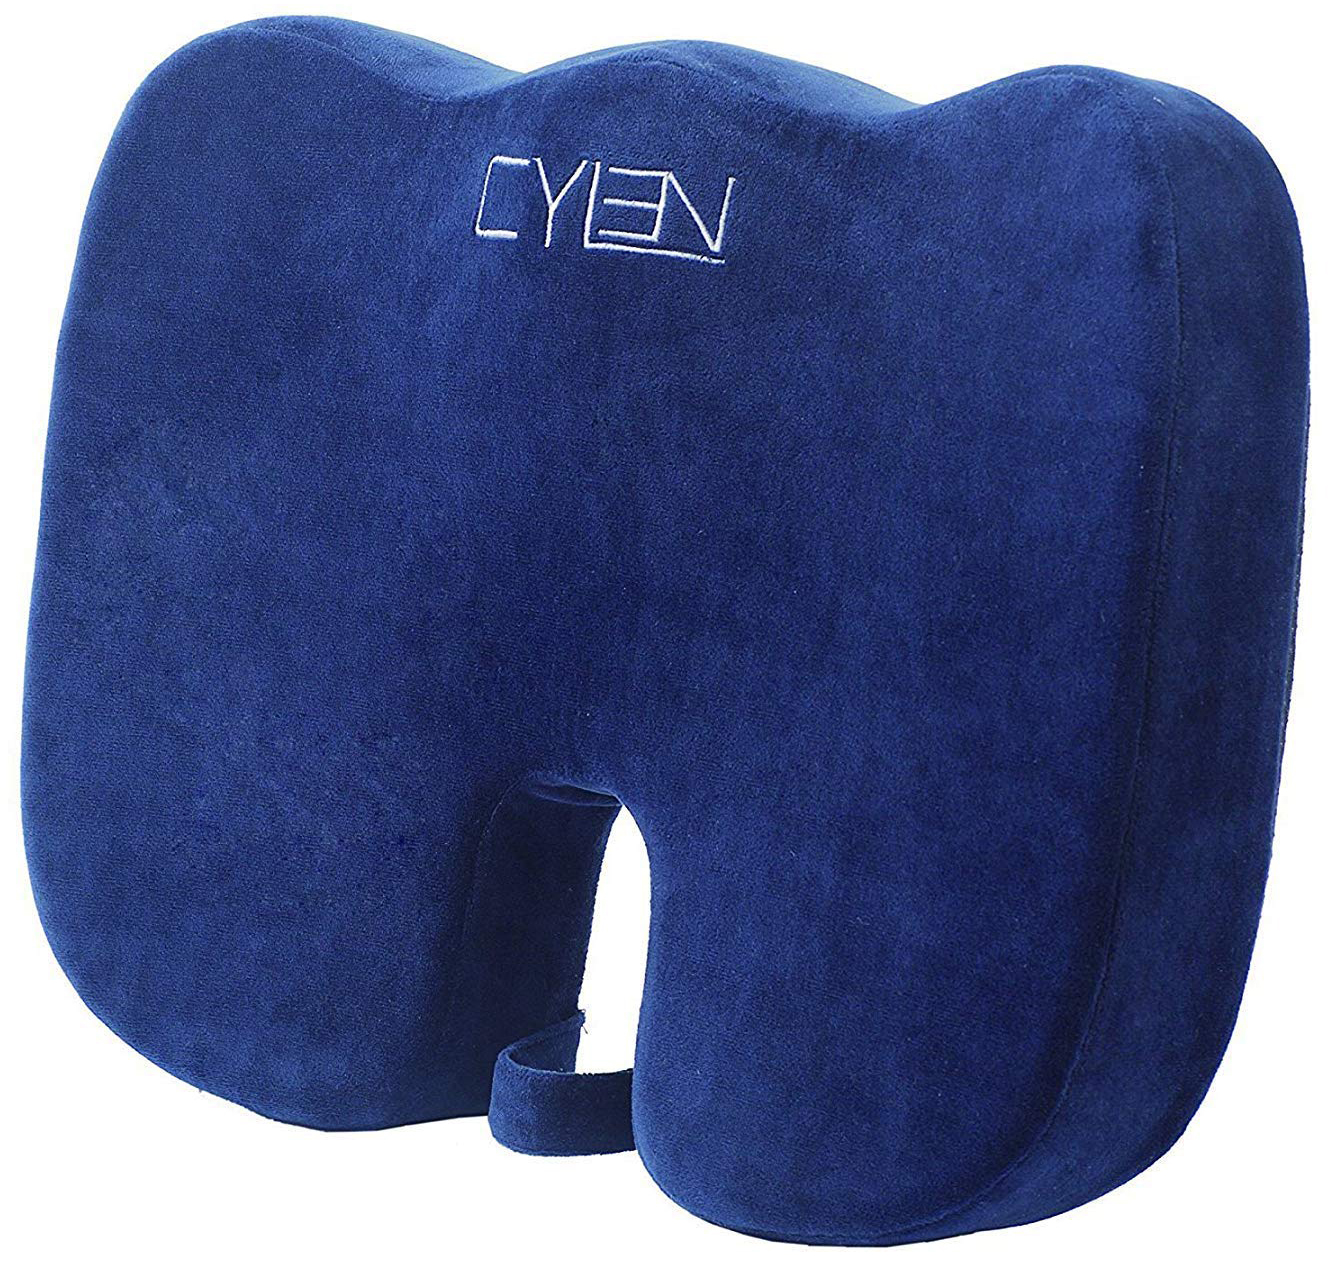 CYLEN -Memory Foam Orthopedic Seat Cushion for Car and Office Chair